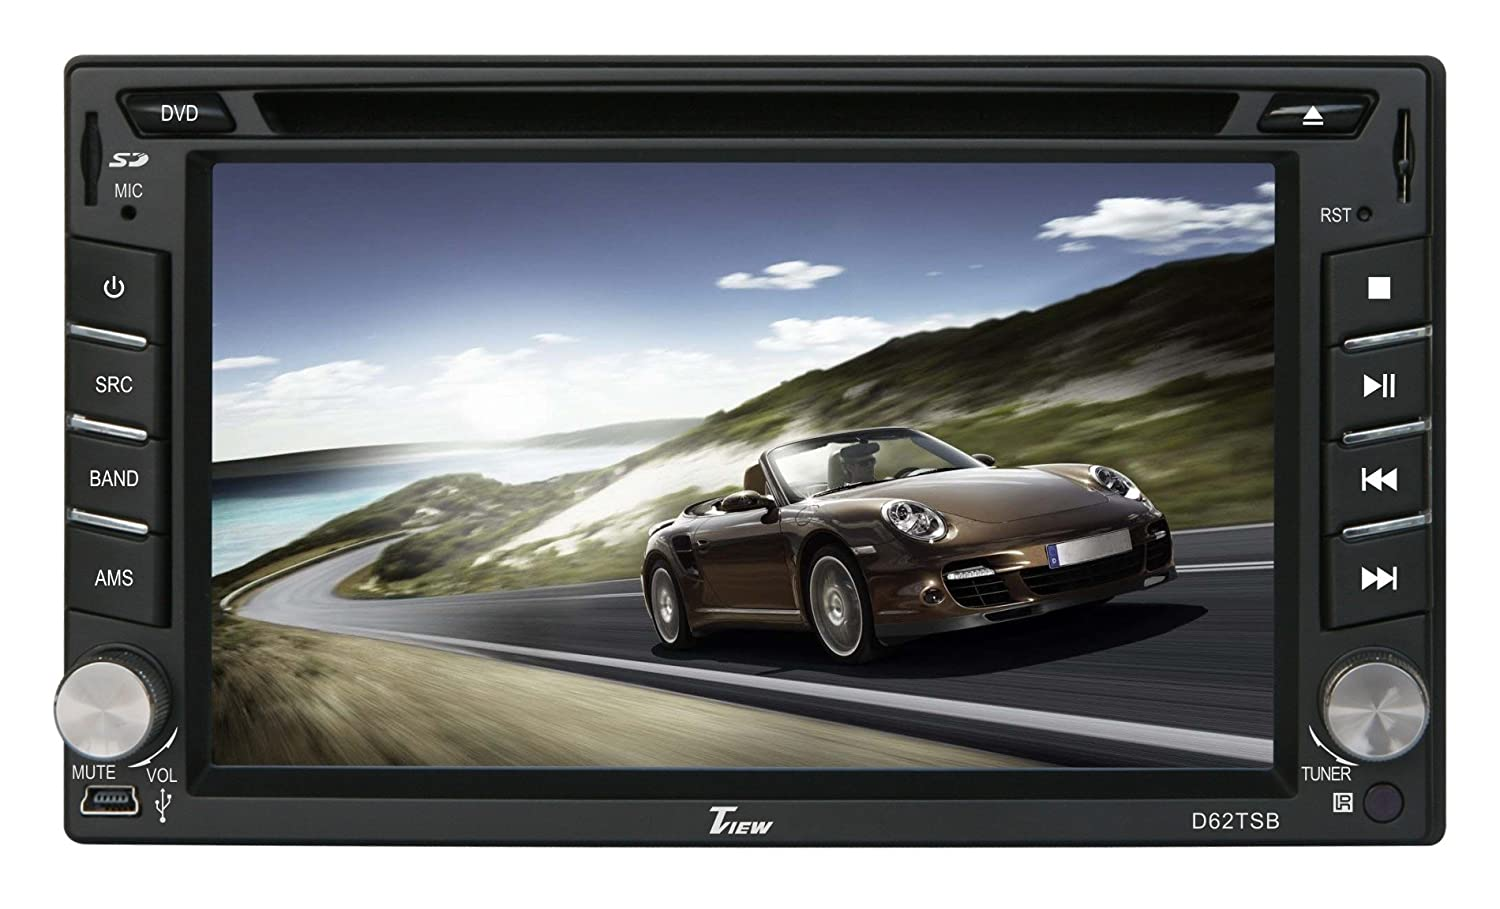 71N8 eVkMJL._SL1500_ amazon com tview d62tsb 6 2 inch double din touch screen with  at honlapkeszites.co